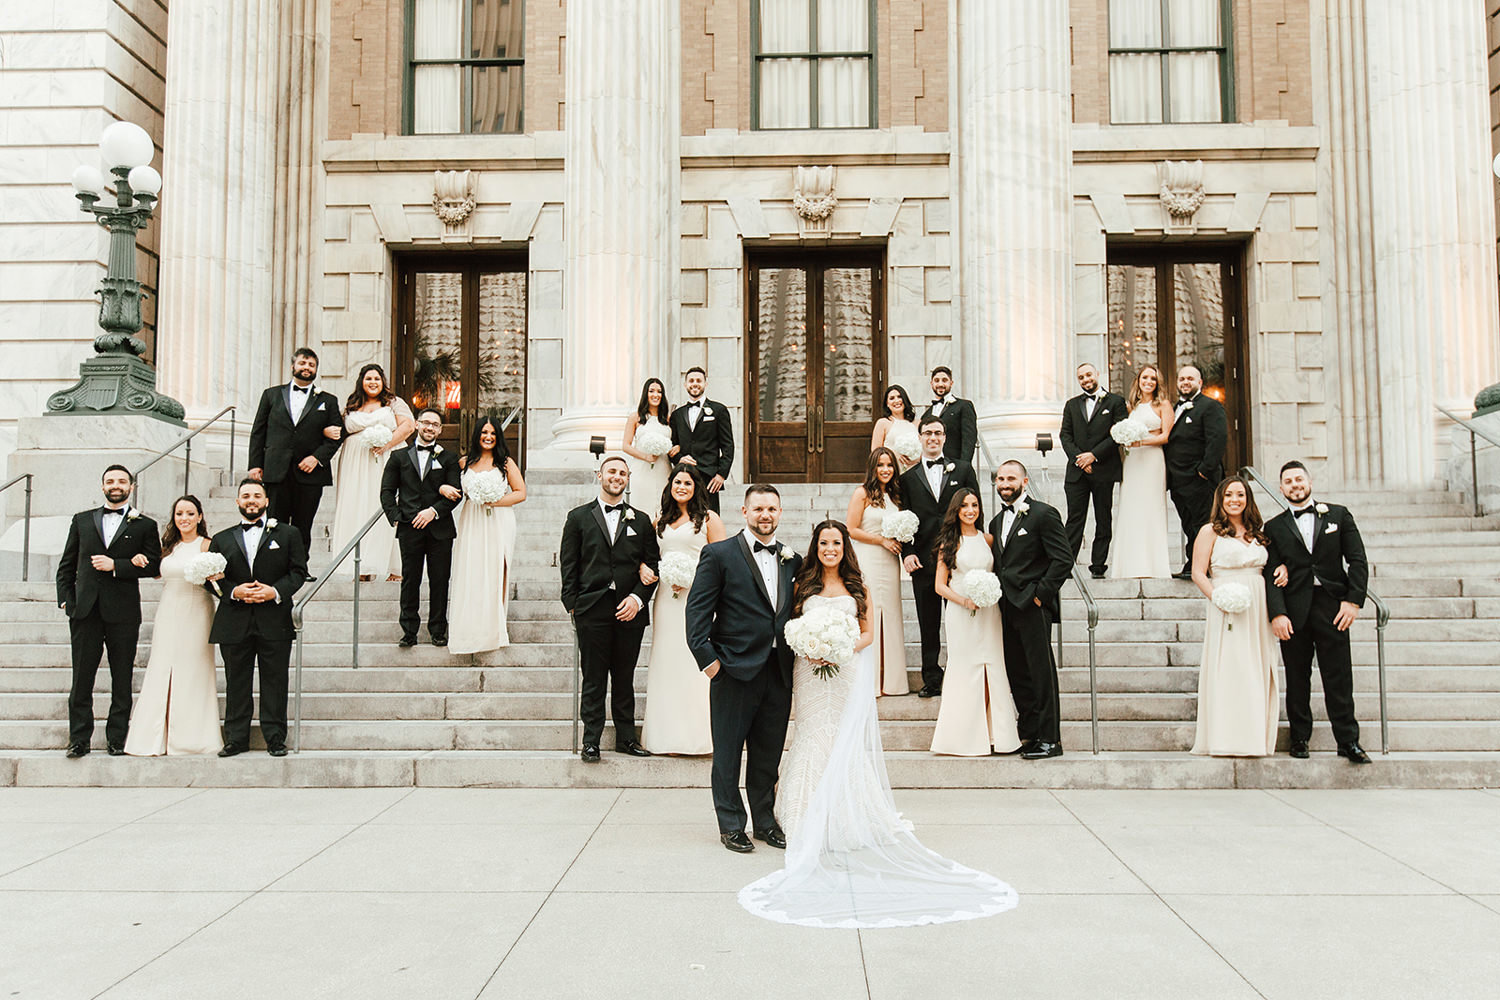 blush and black wedding party posing on steps